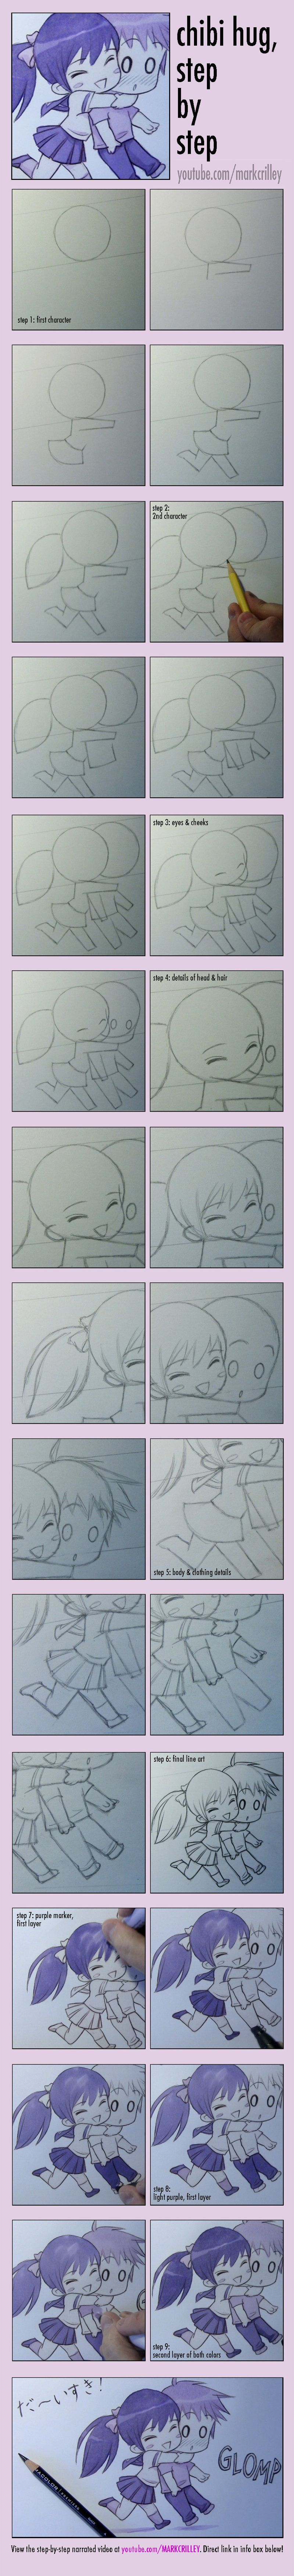 Chibi Hug, Step by Step by *markcrilley on deviantART   Awww this is adorable!